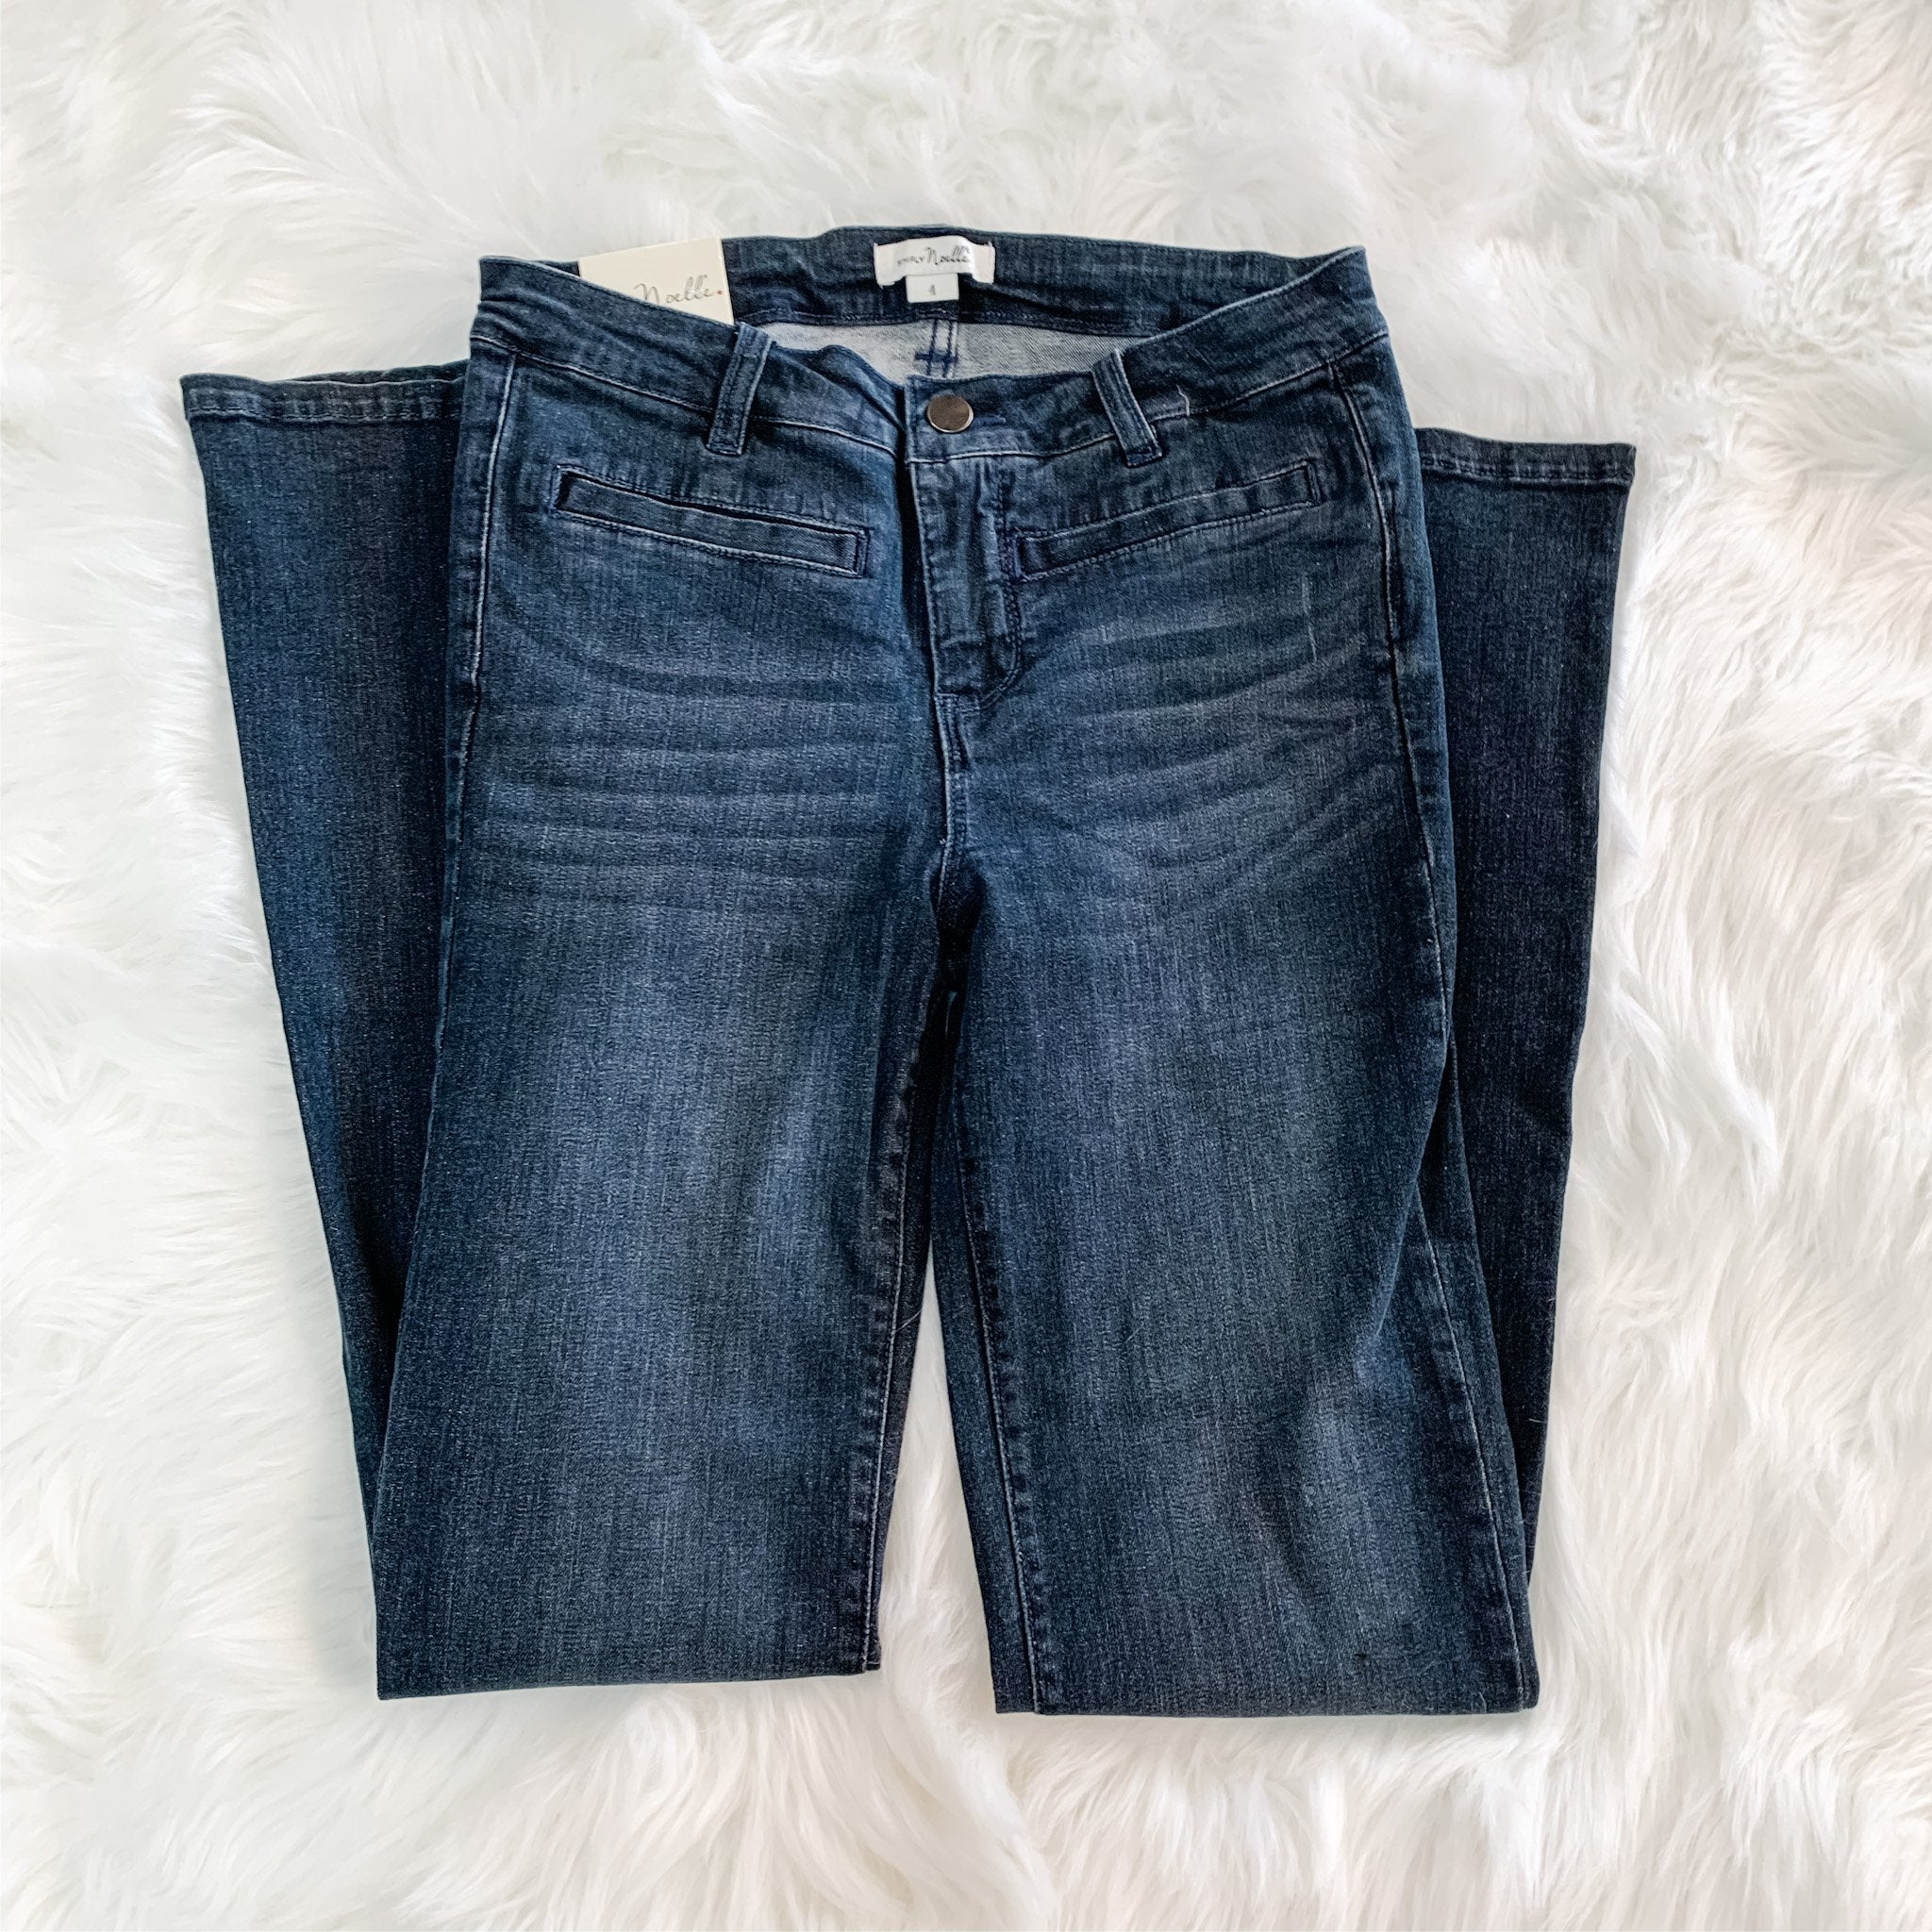 Boot Cut Jeans (Dark Wash Denim)